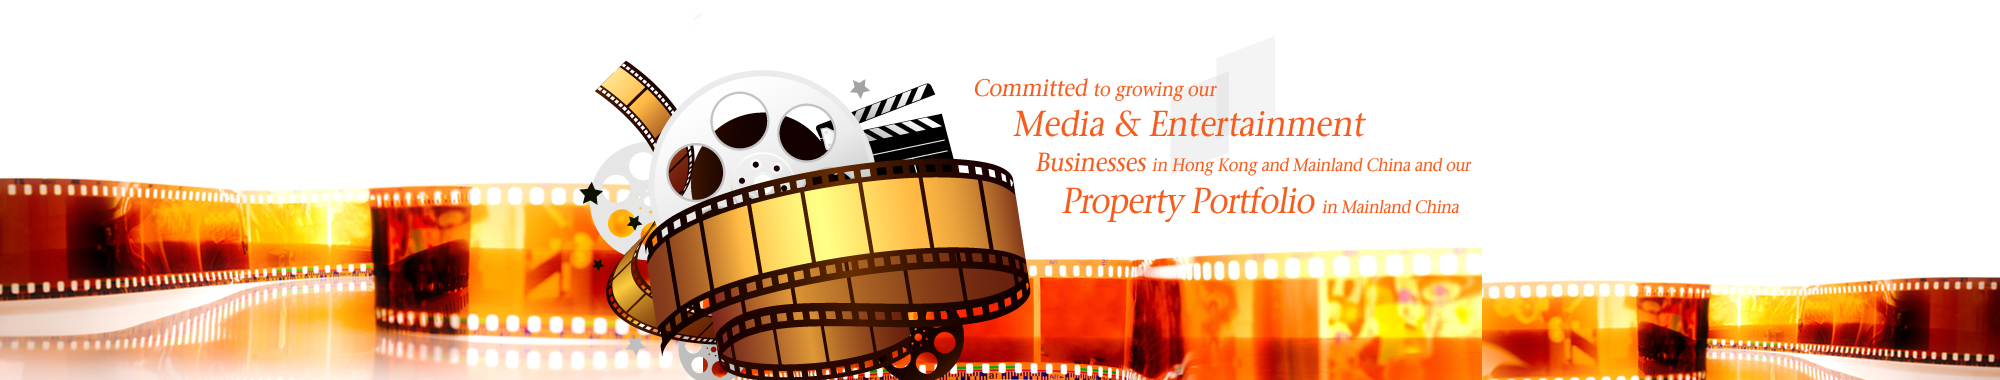 Committed to growing our media and entertainment businesses in Hong Kong and the PRC and our property portfolio in China